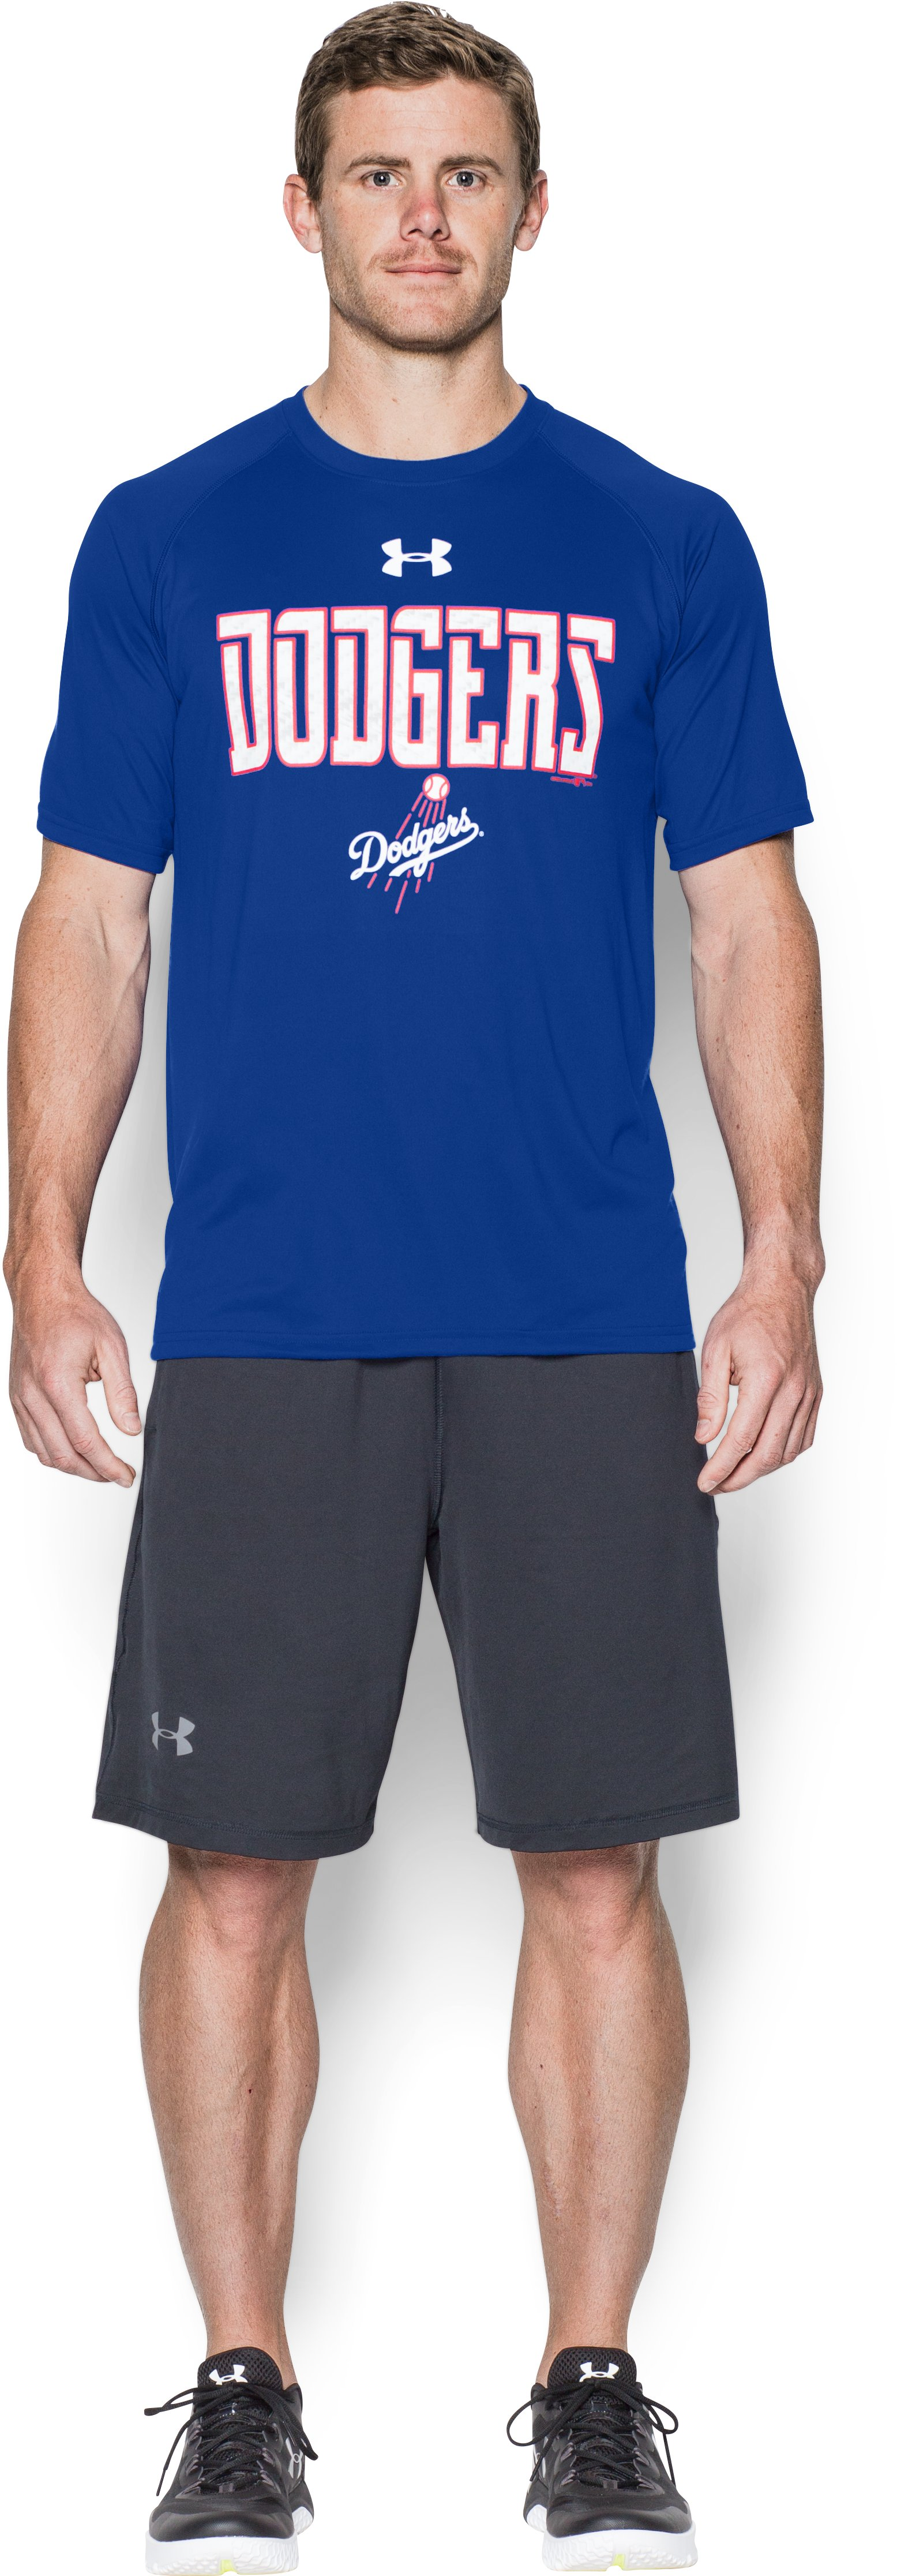 Men's Los Angeles Dodgers Team Tech™ T-Shirt, Royal